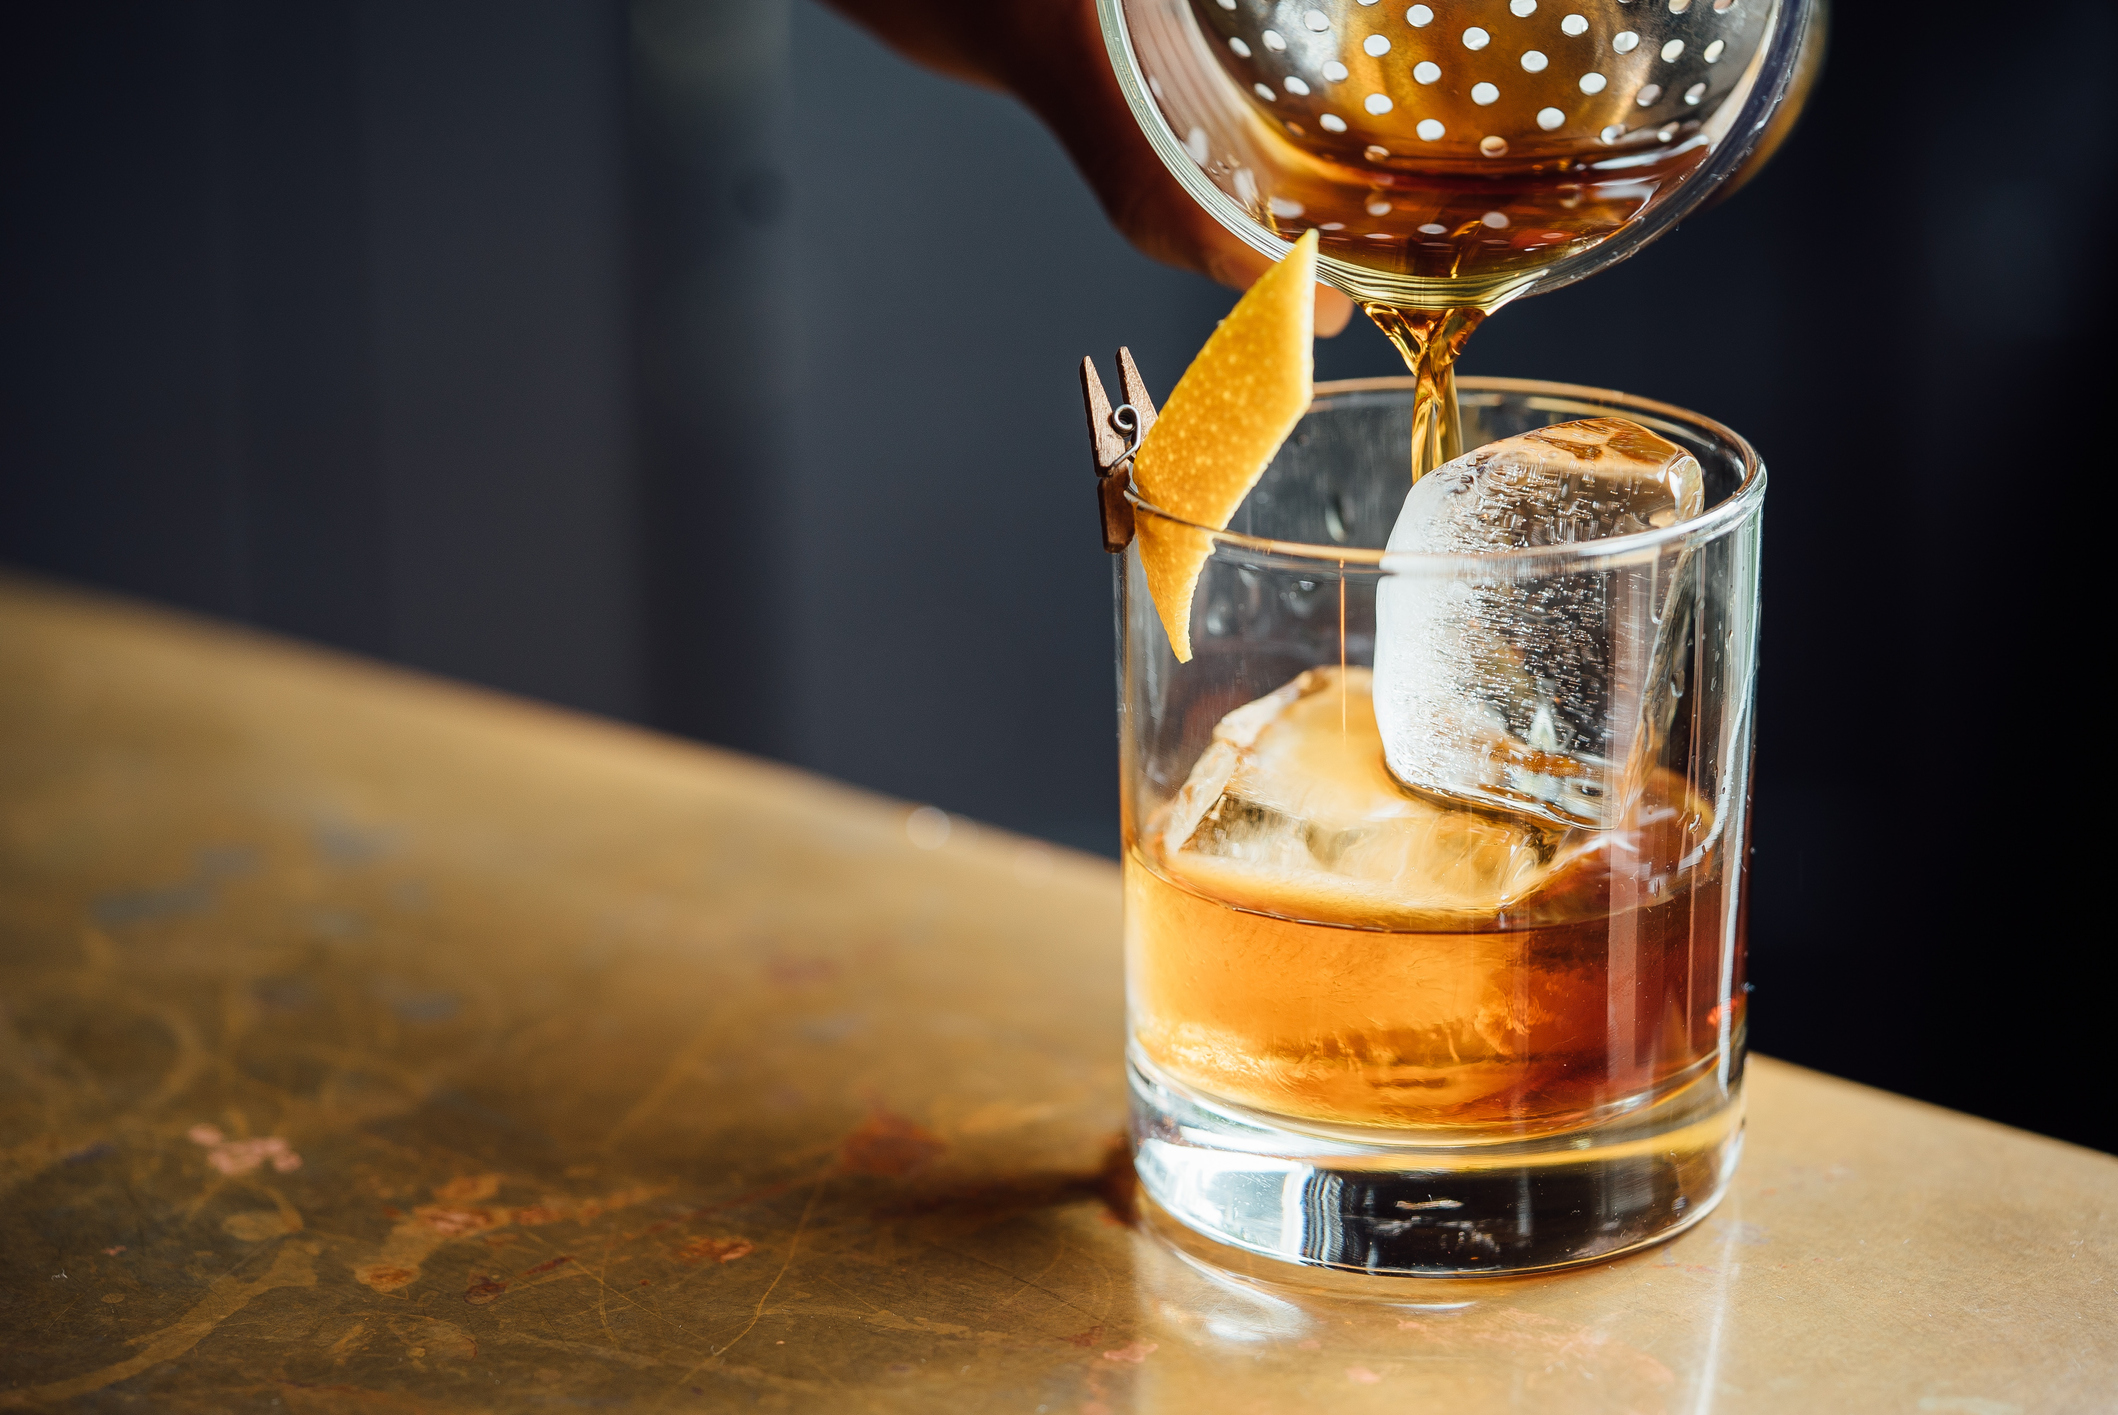 old_fashioned_whisky_istock.jpg